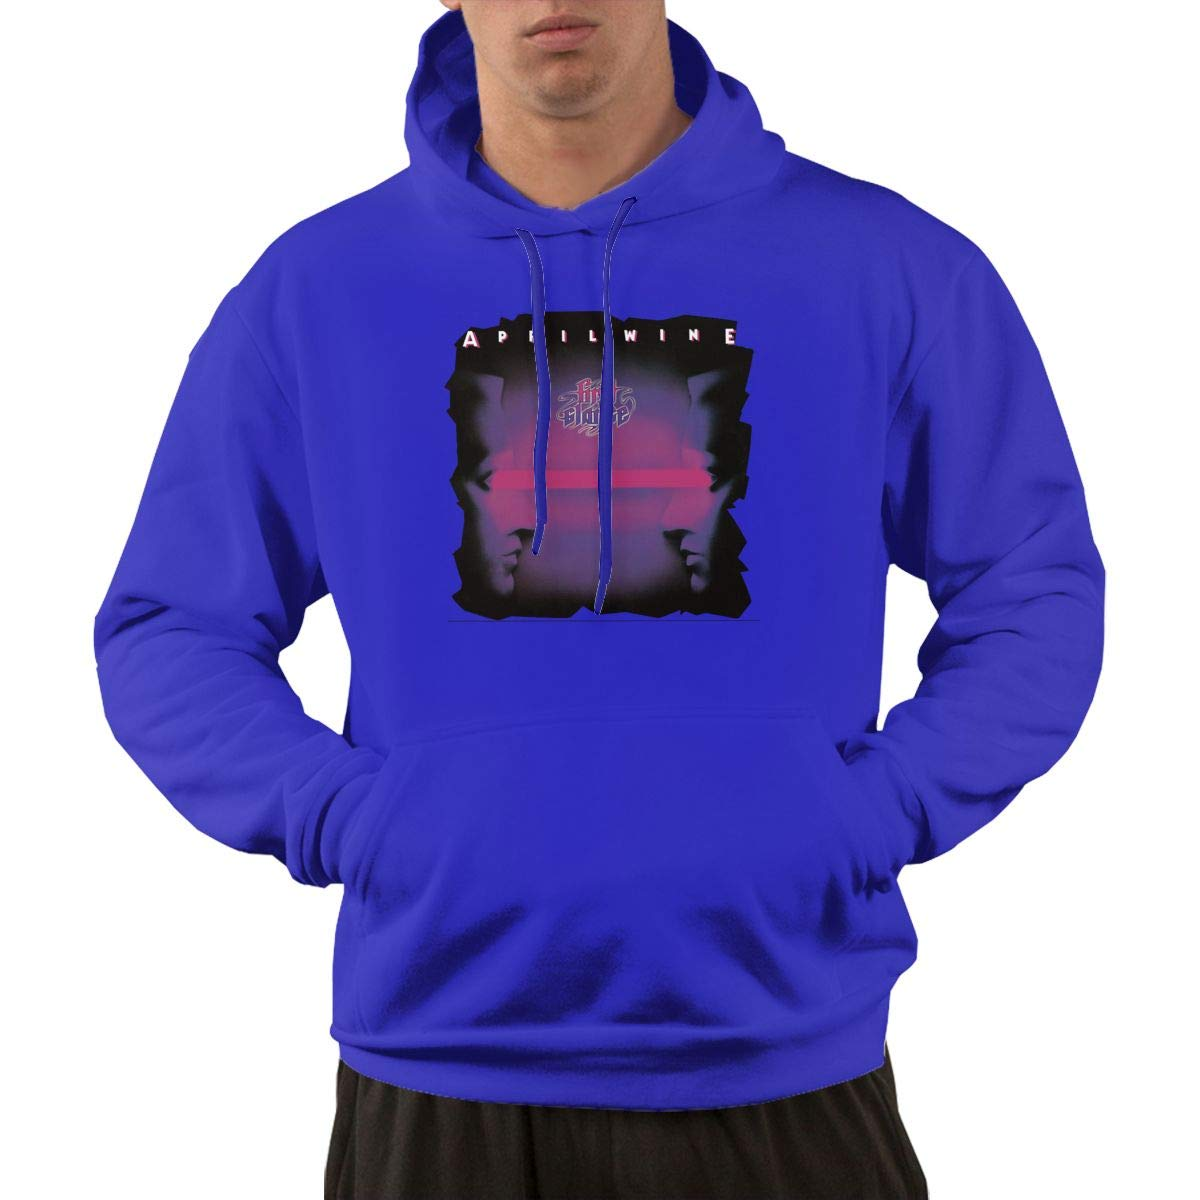 Erman S Pullover Athletic Blue Print April Wine Band Hooded Shirts With Pocket